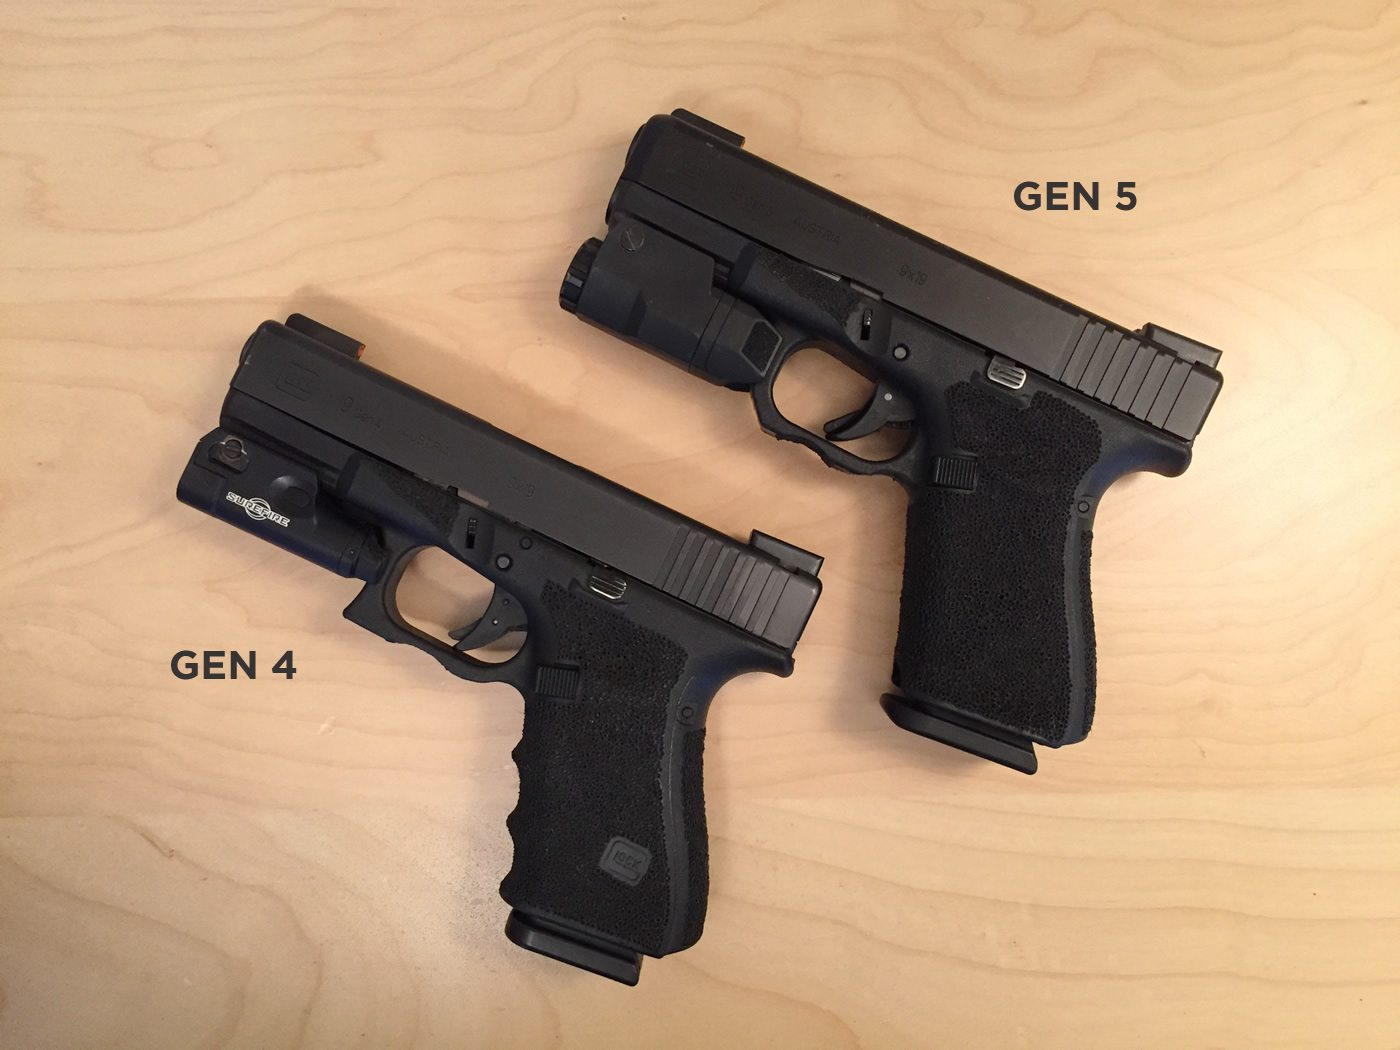 Glock 19 Gens 4 and 5